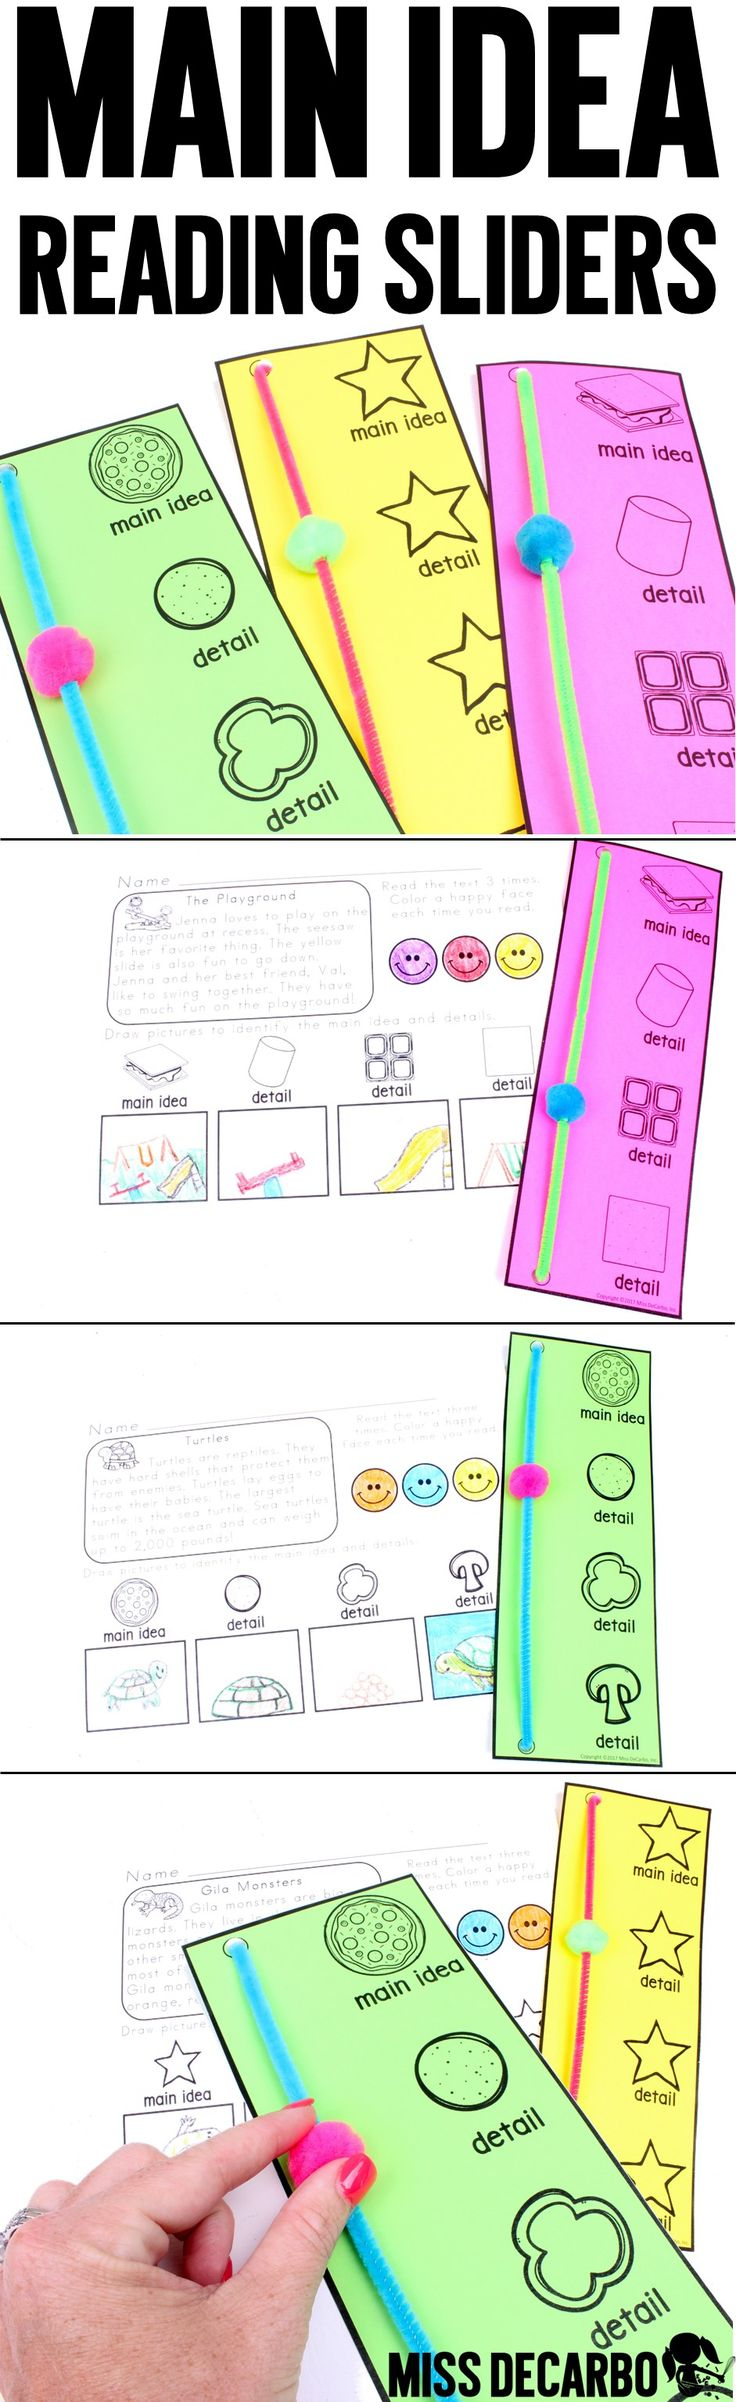 Main Idea and Details Reading Tool! A hands-on, kinesthetic, and highly visual comprehension tool to add to your reading toolkit! The resource includes three versions of the Main Idea reading slider to help you teach main idea and details to your students!  20 coordinating reading passages are included, as well as multiple differentiated graphic organizers. These are great for small group reading, assessment, intervention, re-teaching, and more!